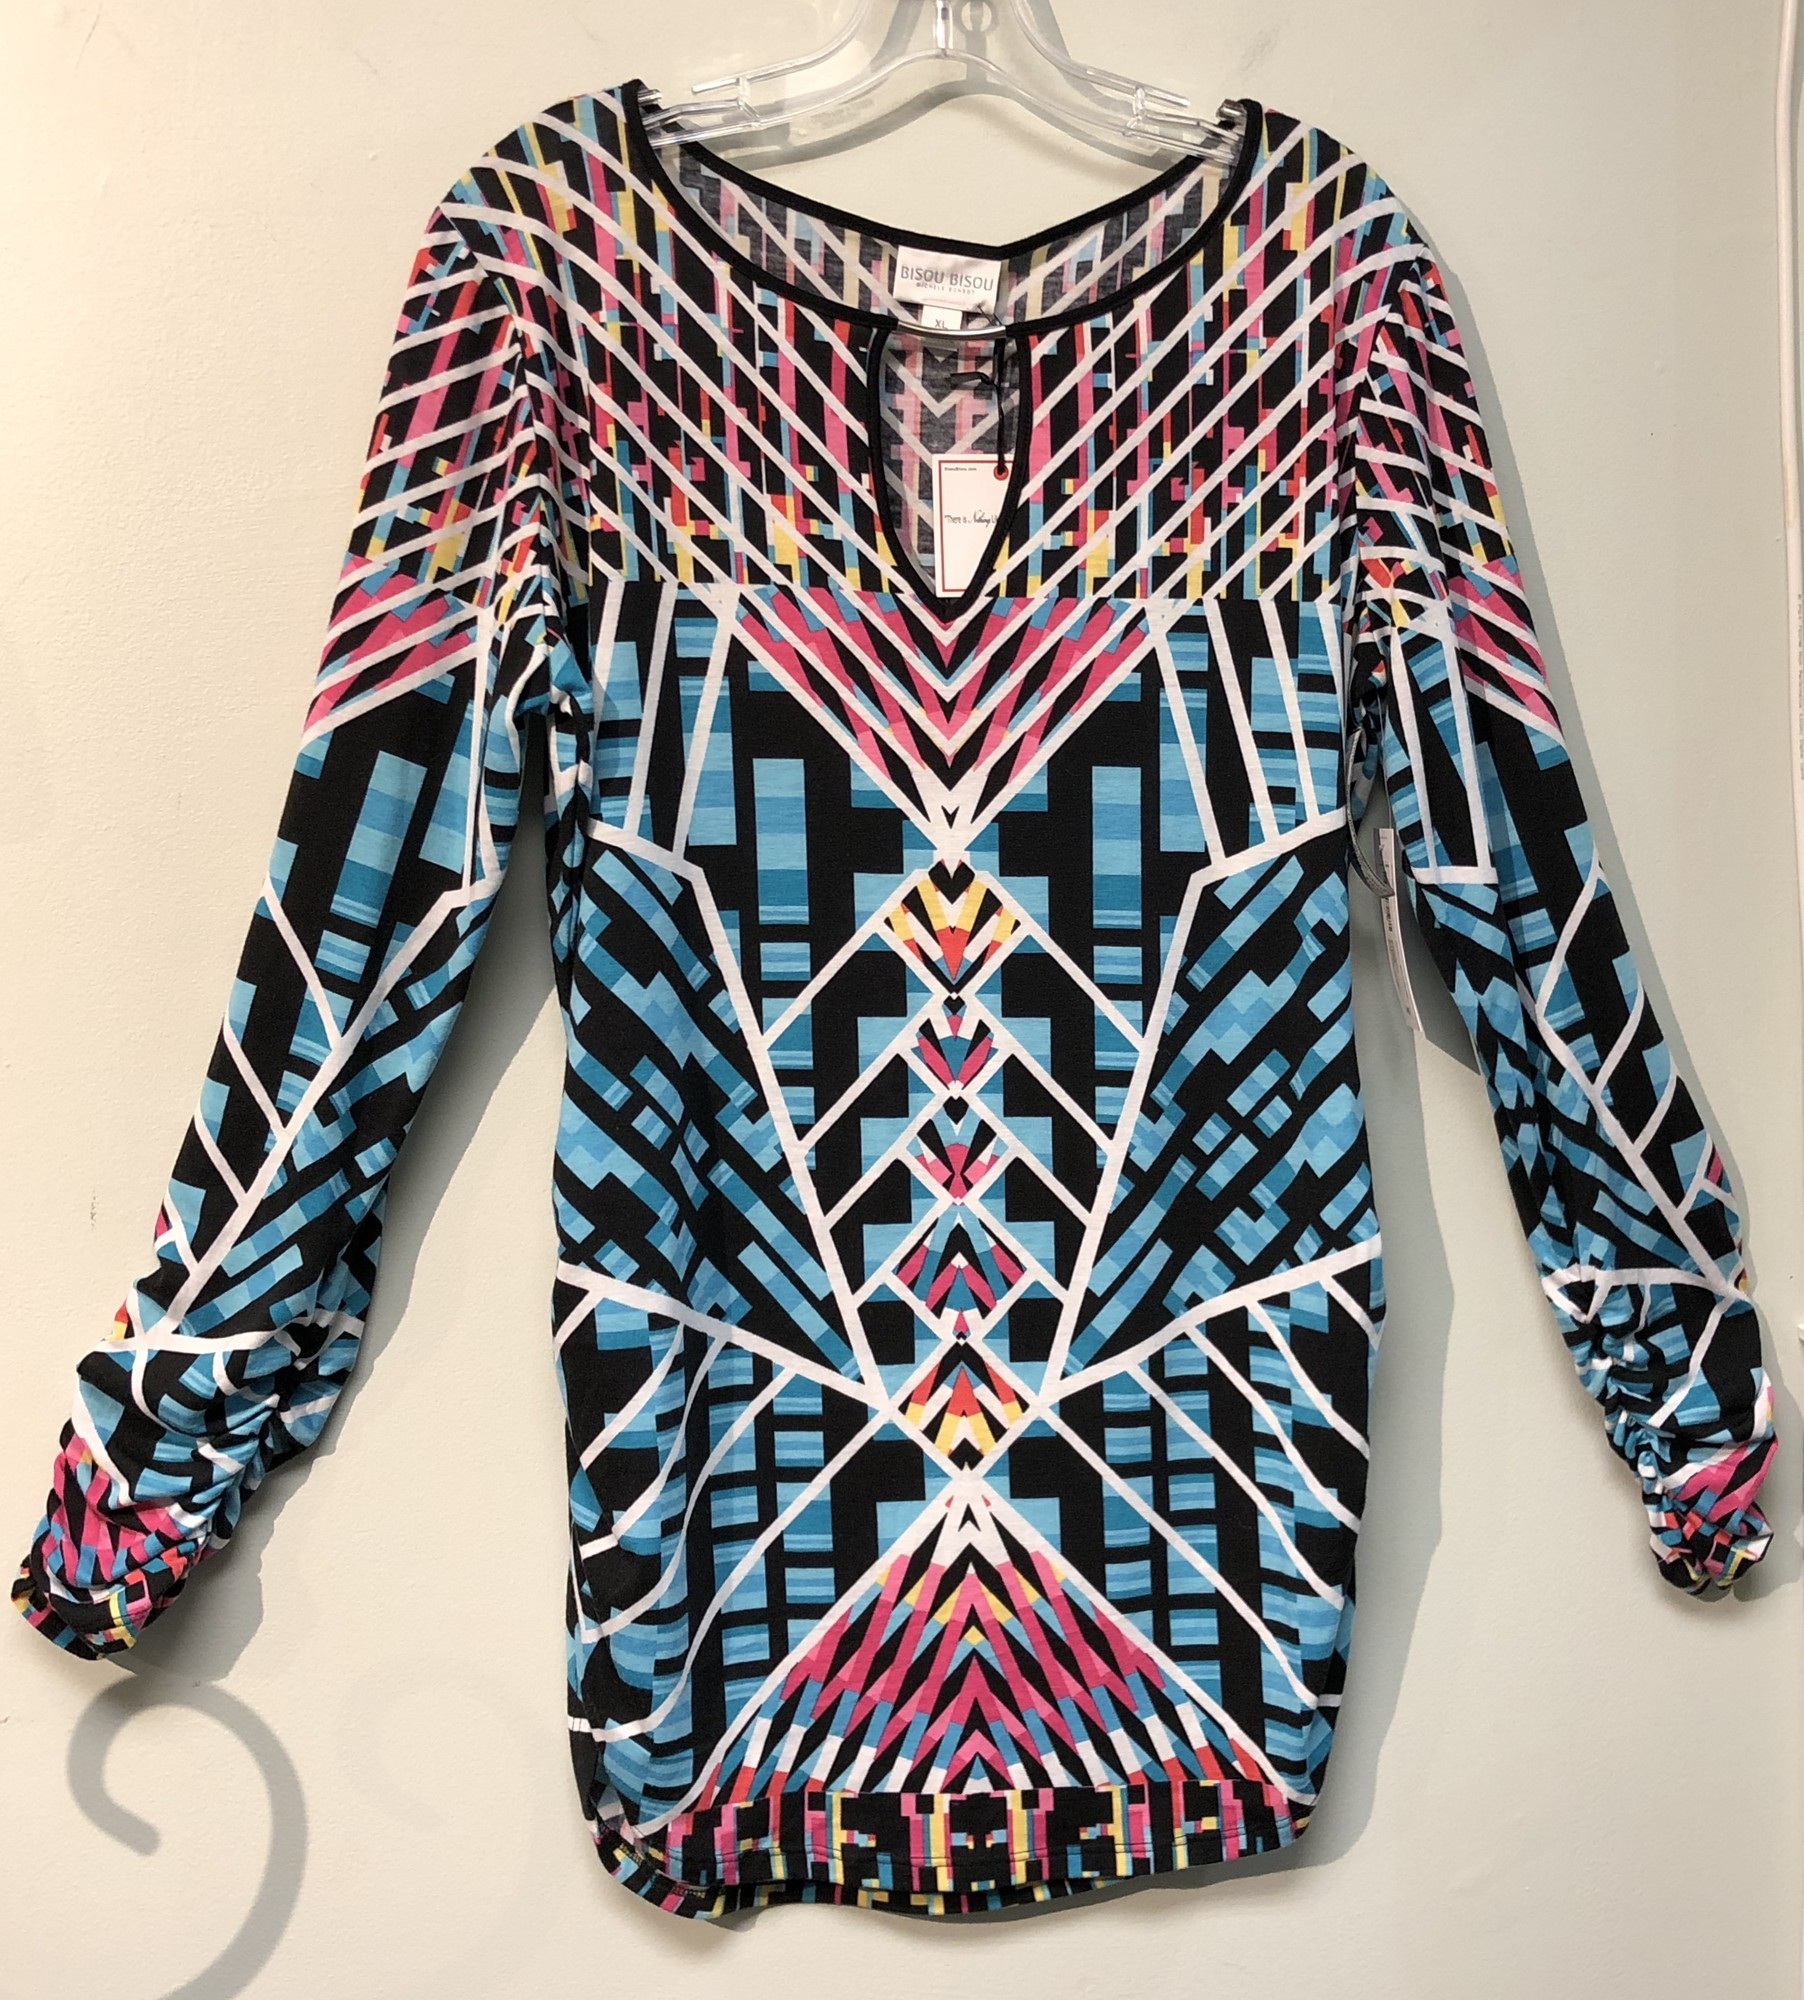 Bisou Bisou Top/Tunic<br /> Size: XL<br /> Color: Multi<br /> Style: Tunic length, long sleeves<br /> NWT<br /> Please see photos for material and care instructions